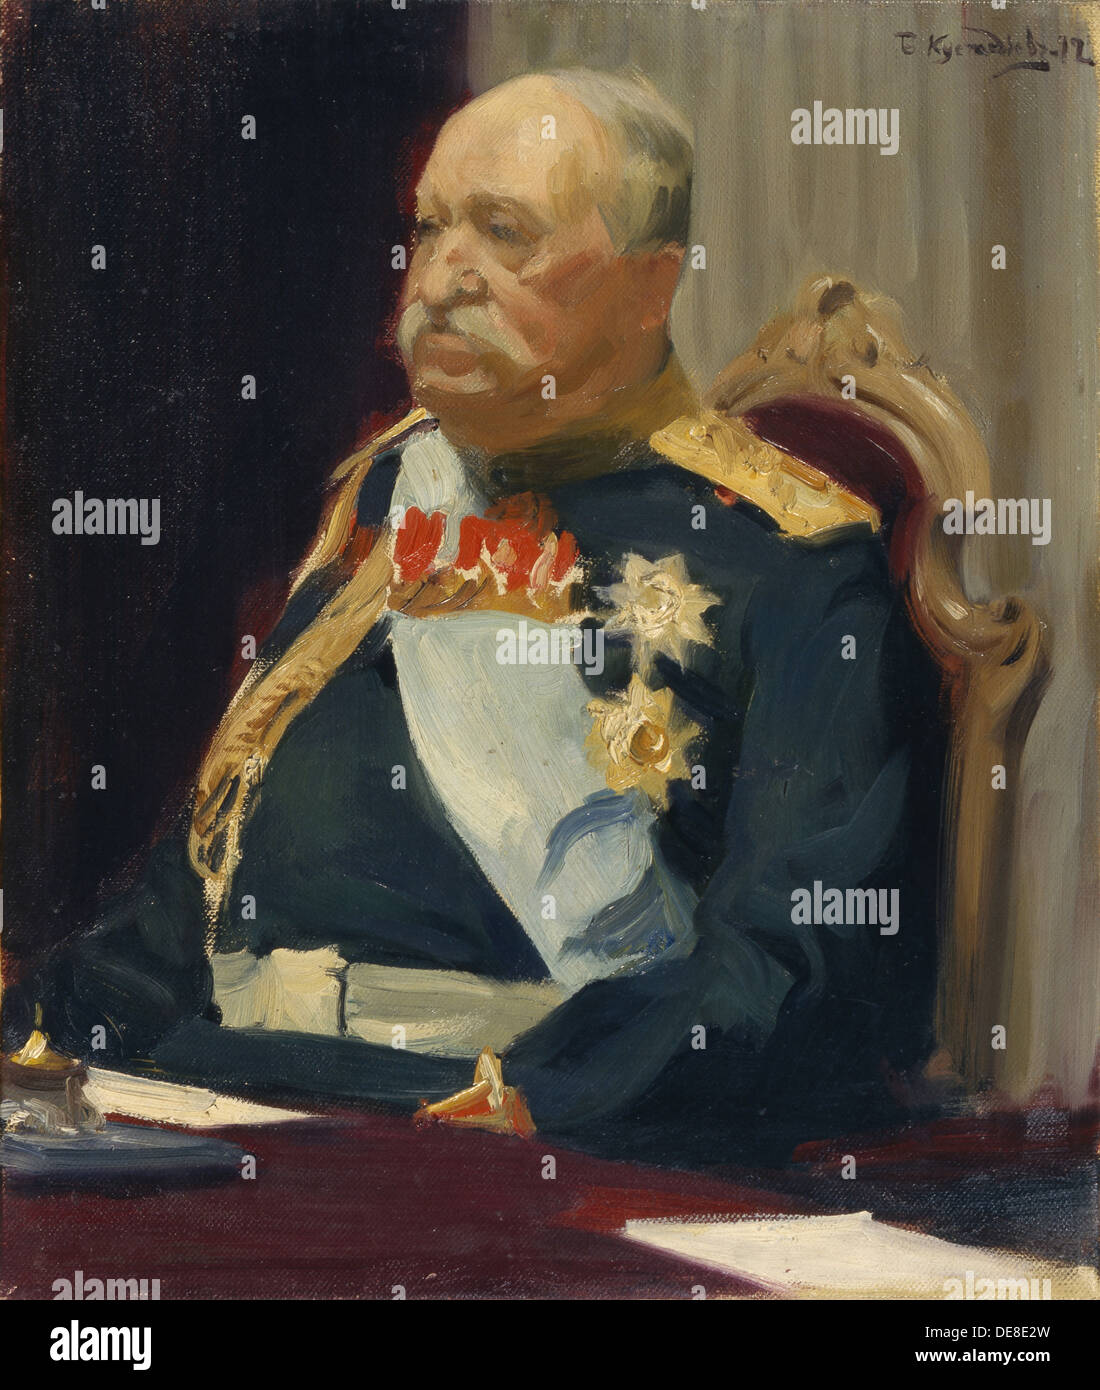 Portrait of Count Alexei Ignatyev, the Member of the State Council, Minister of the interior, 1902. Artist: Kustodiev, Boris Mic - Stock Image